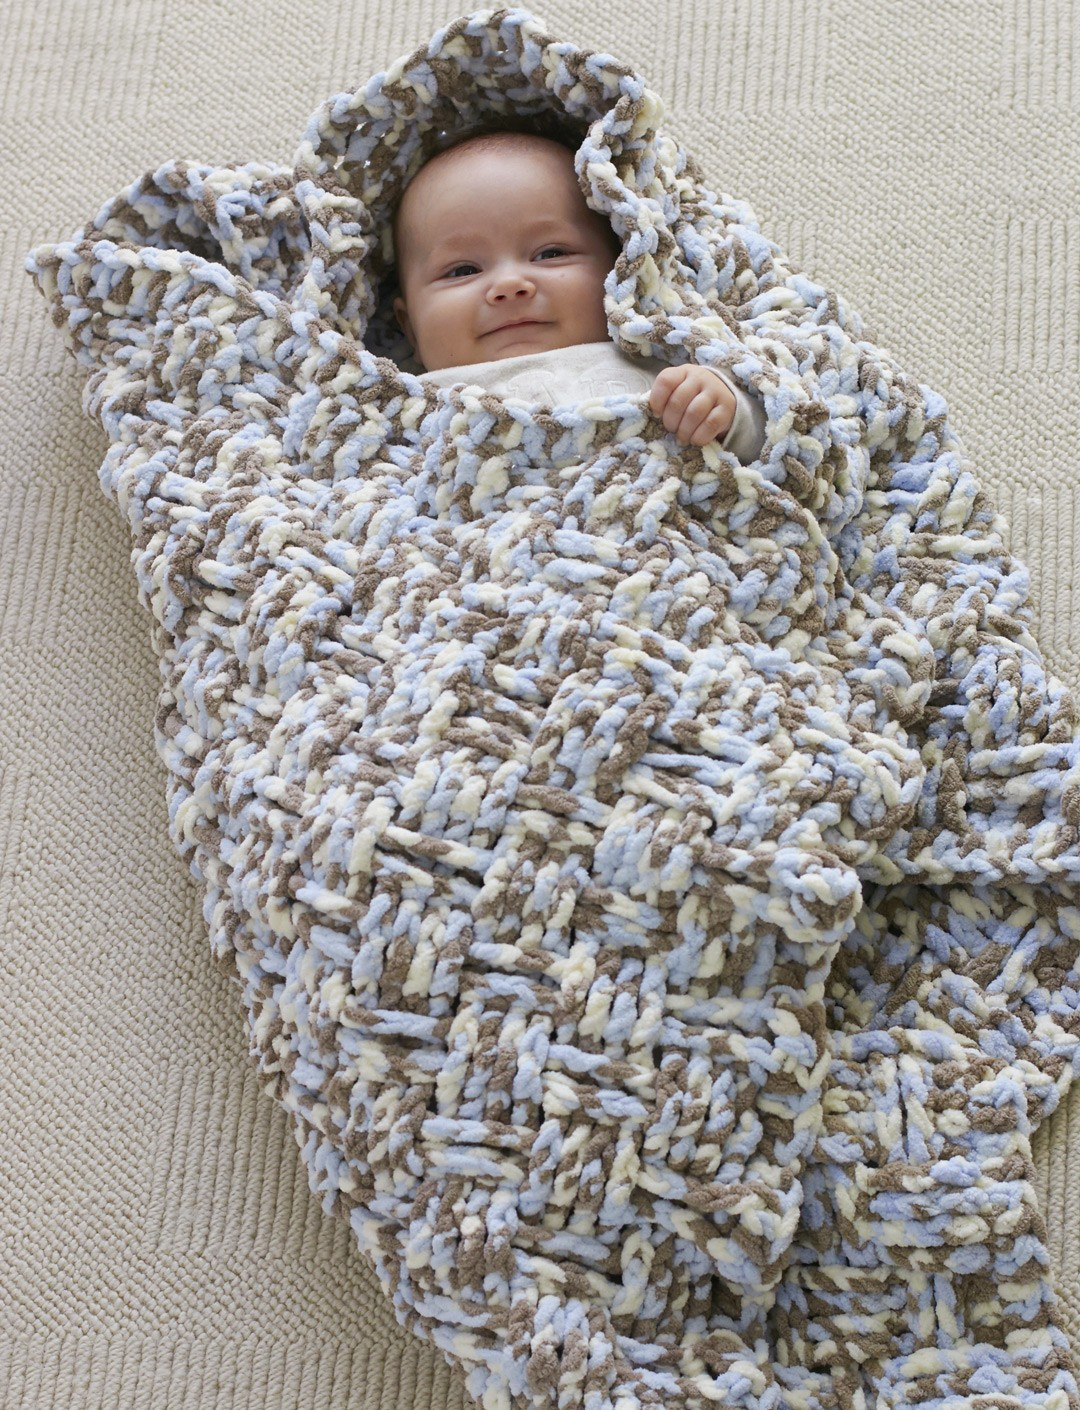 Bernat Crochet Baby Blanket Elegant Bernat Dream Weaver Blanket Crochet Pattern Of Wonderful 44 Models Bernat Crochet Baby Blanket